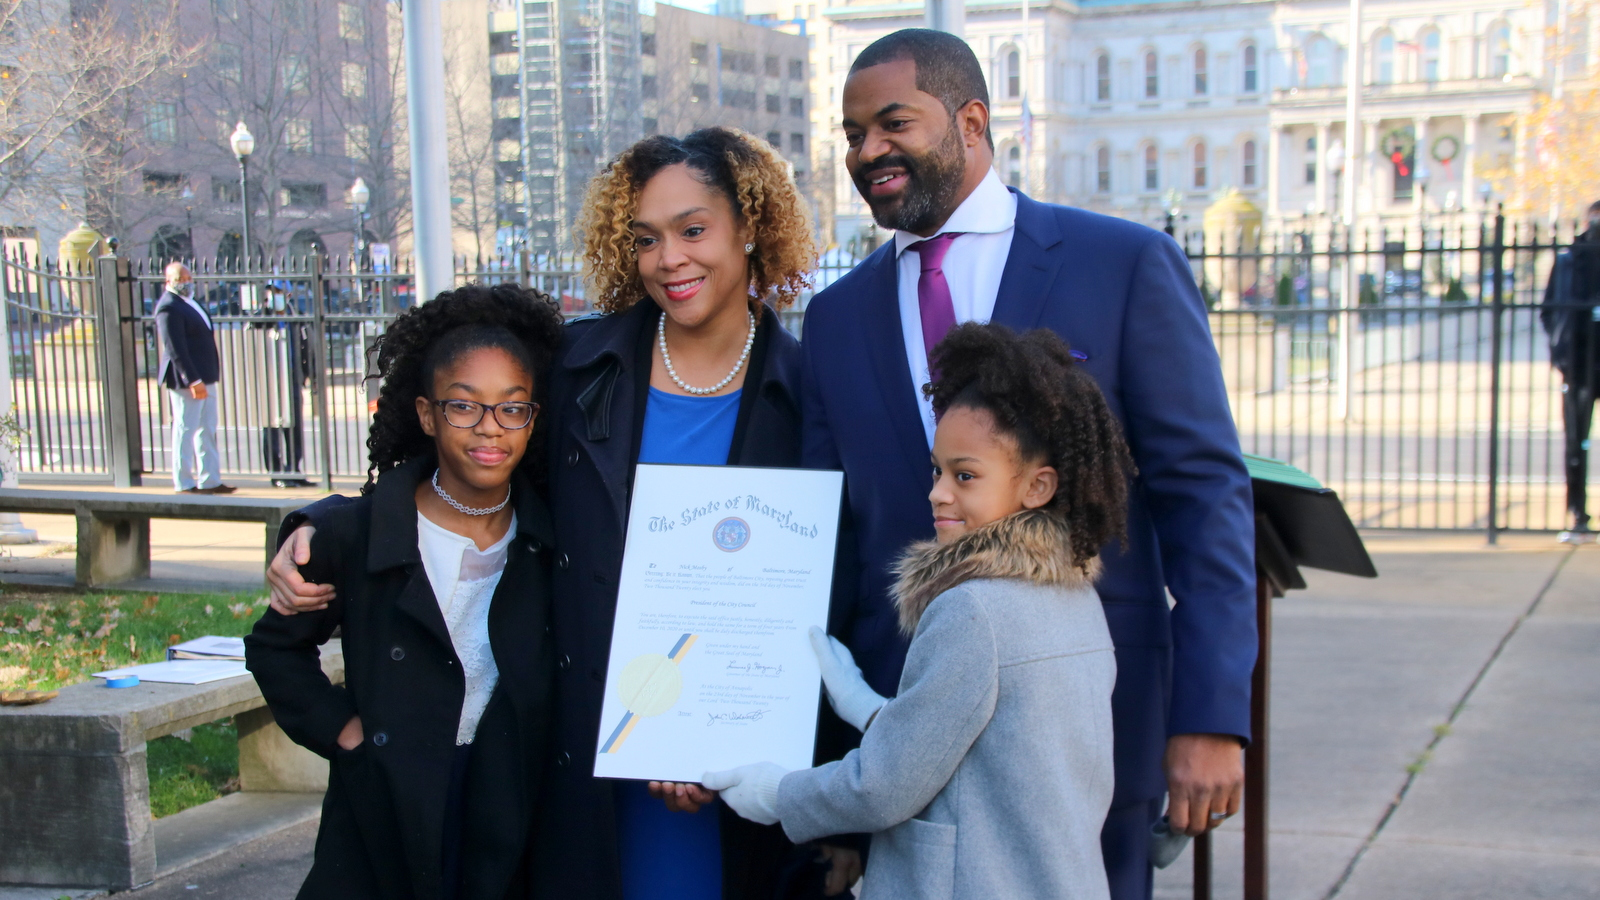 State's Attorney Marilyn Mosby and City Council President Nick Mosby pose with their daughters. (Fern Shen)